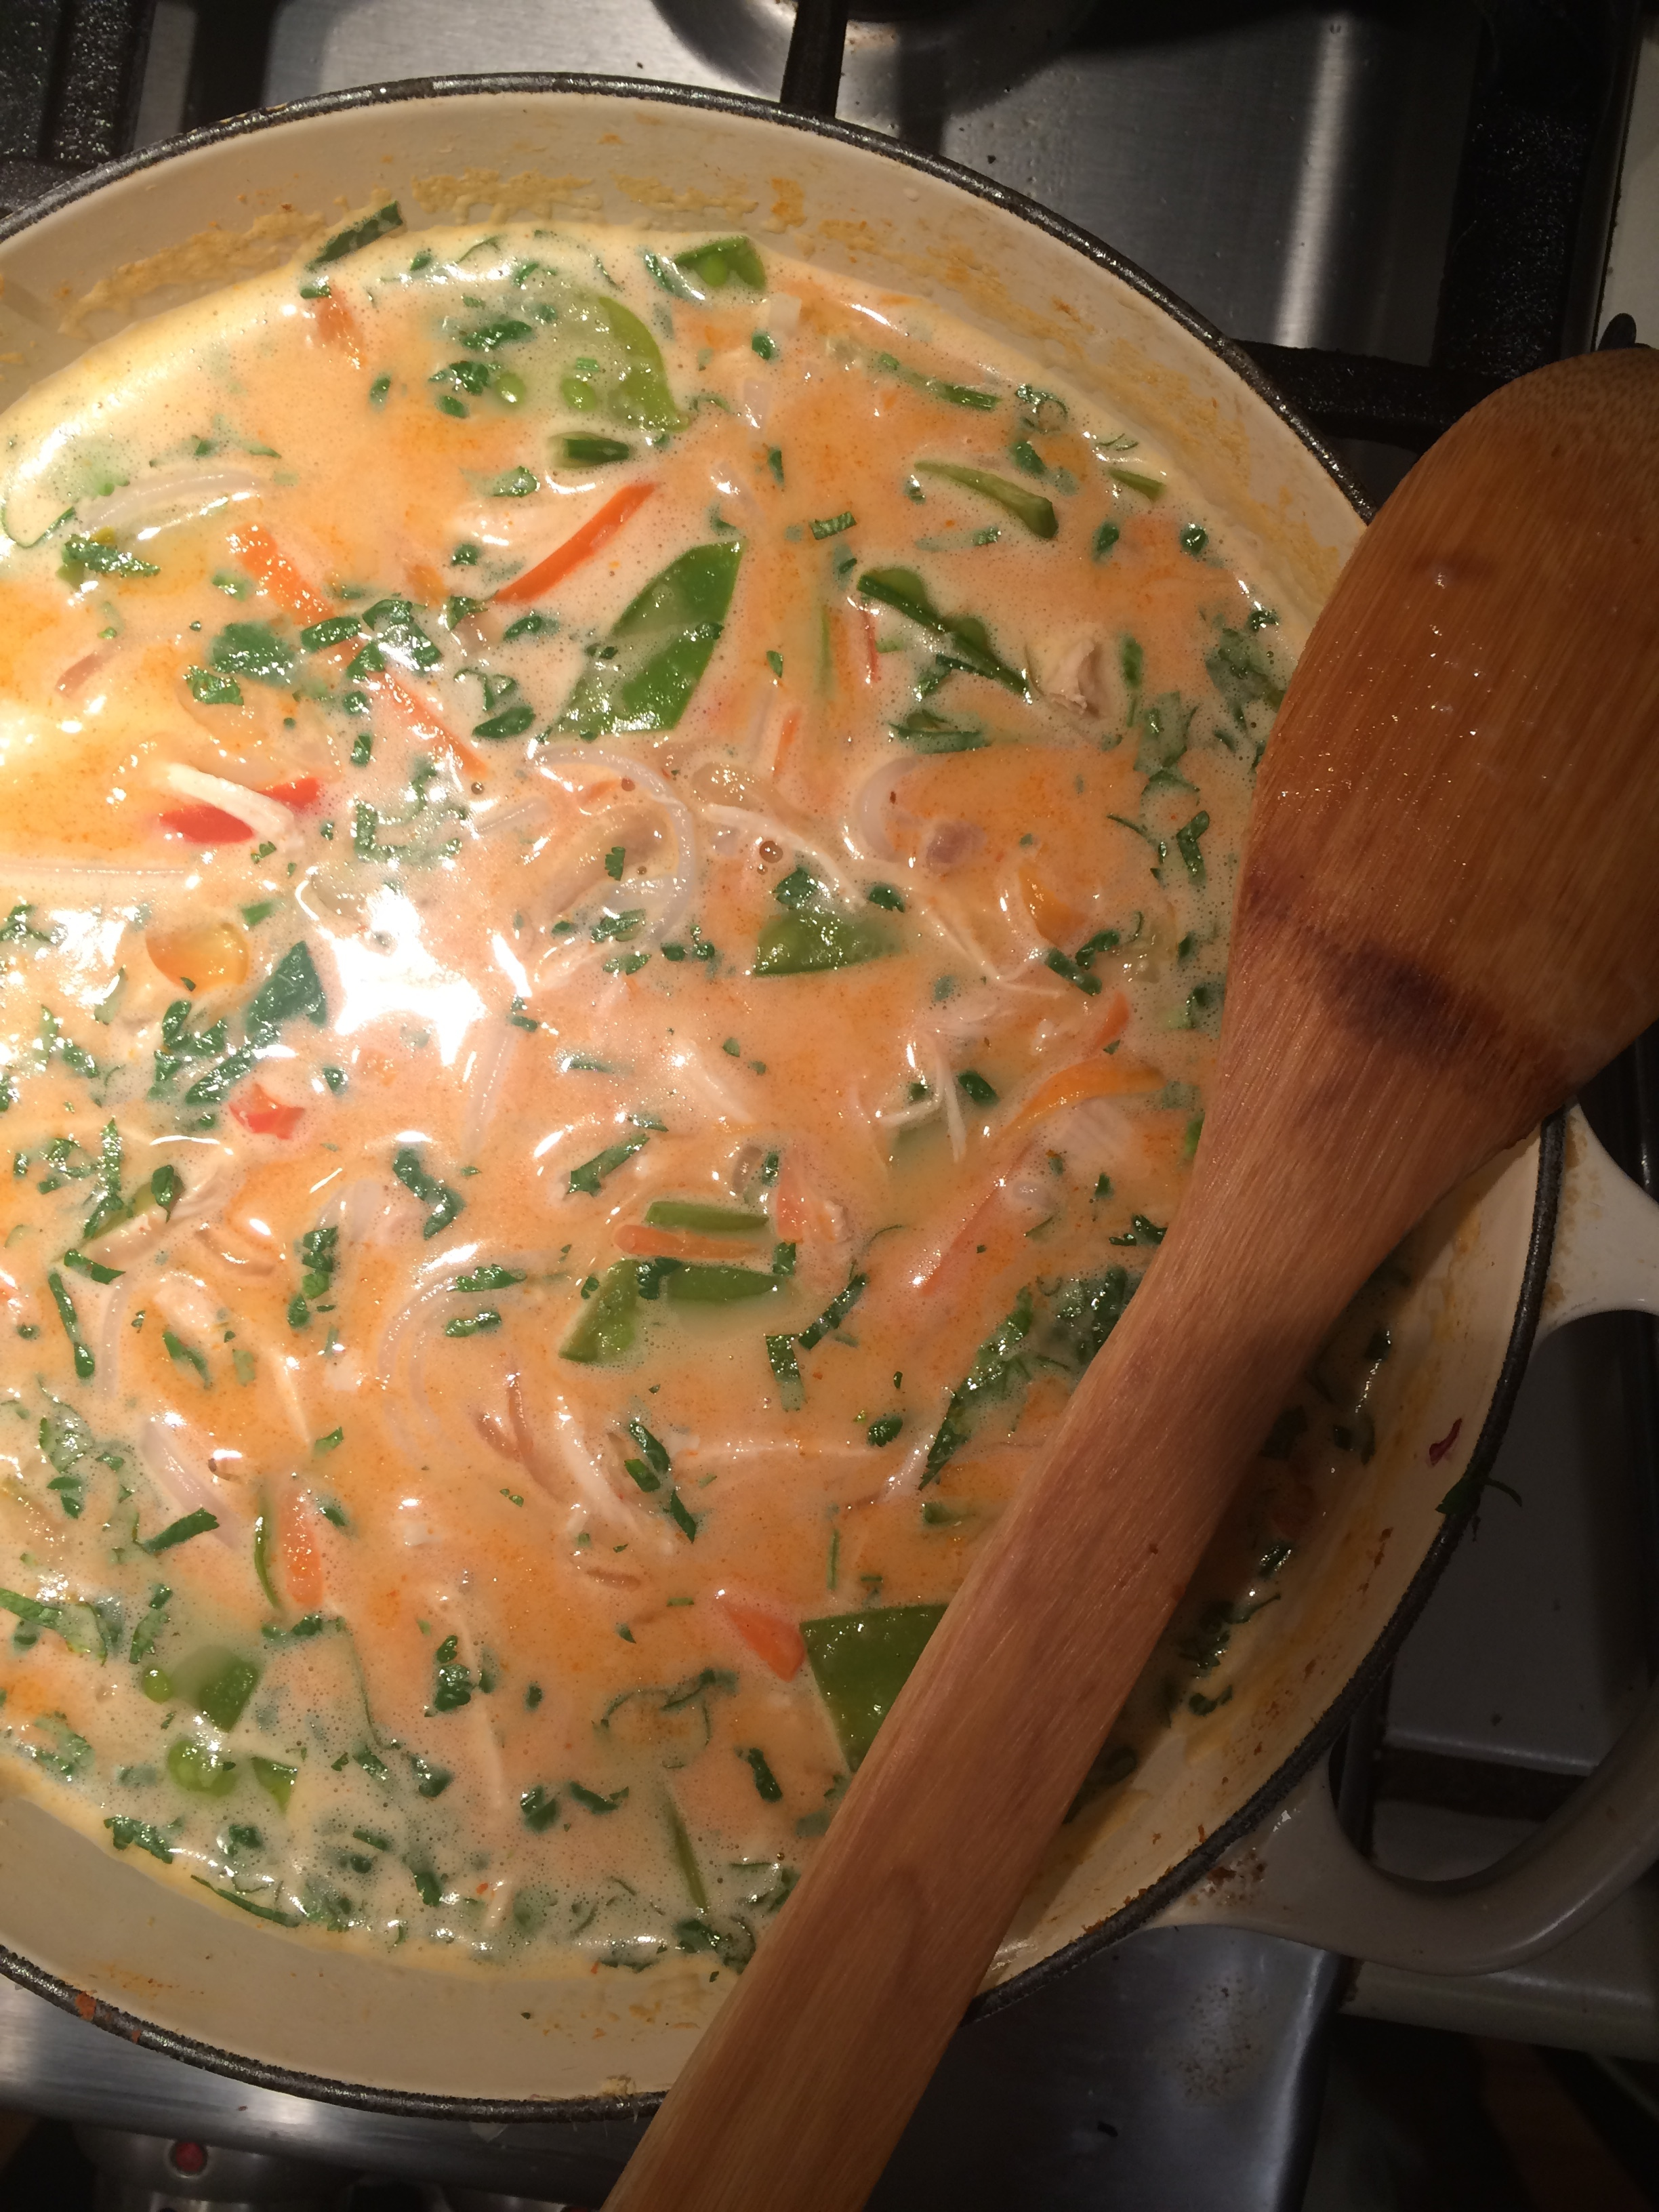 Once the broth mixture has come to the low boil, add the coconut milk, stirring to combine and bring back to temperature. Add shredded chicken, noodles and vegetable at this point. Let the mixture simmer on low until veggies are heated(about 10 minutes) and the flavors are absorbed into the noodles.